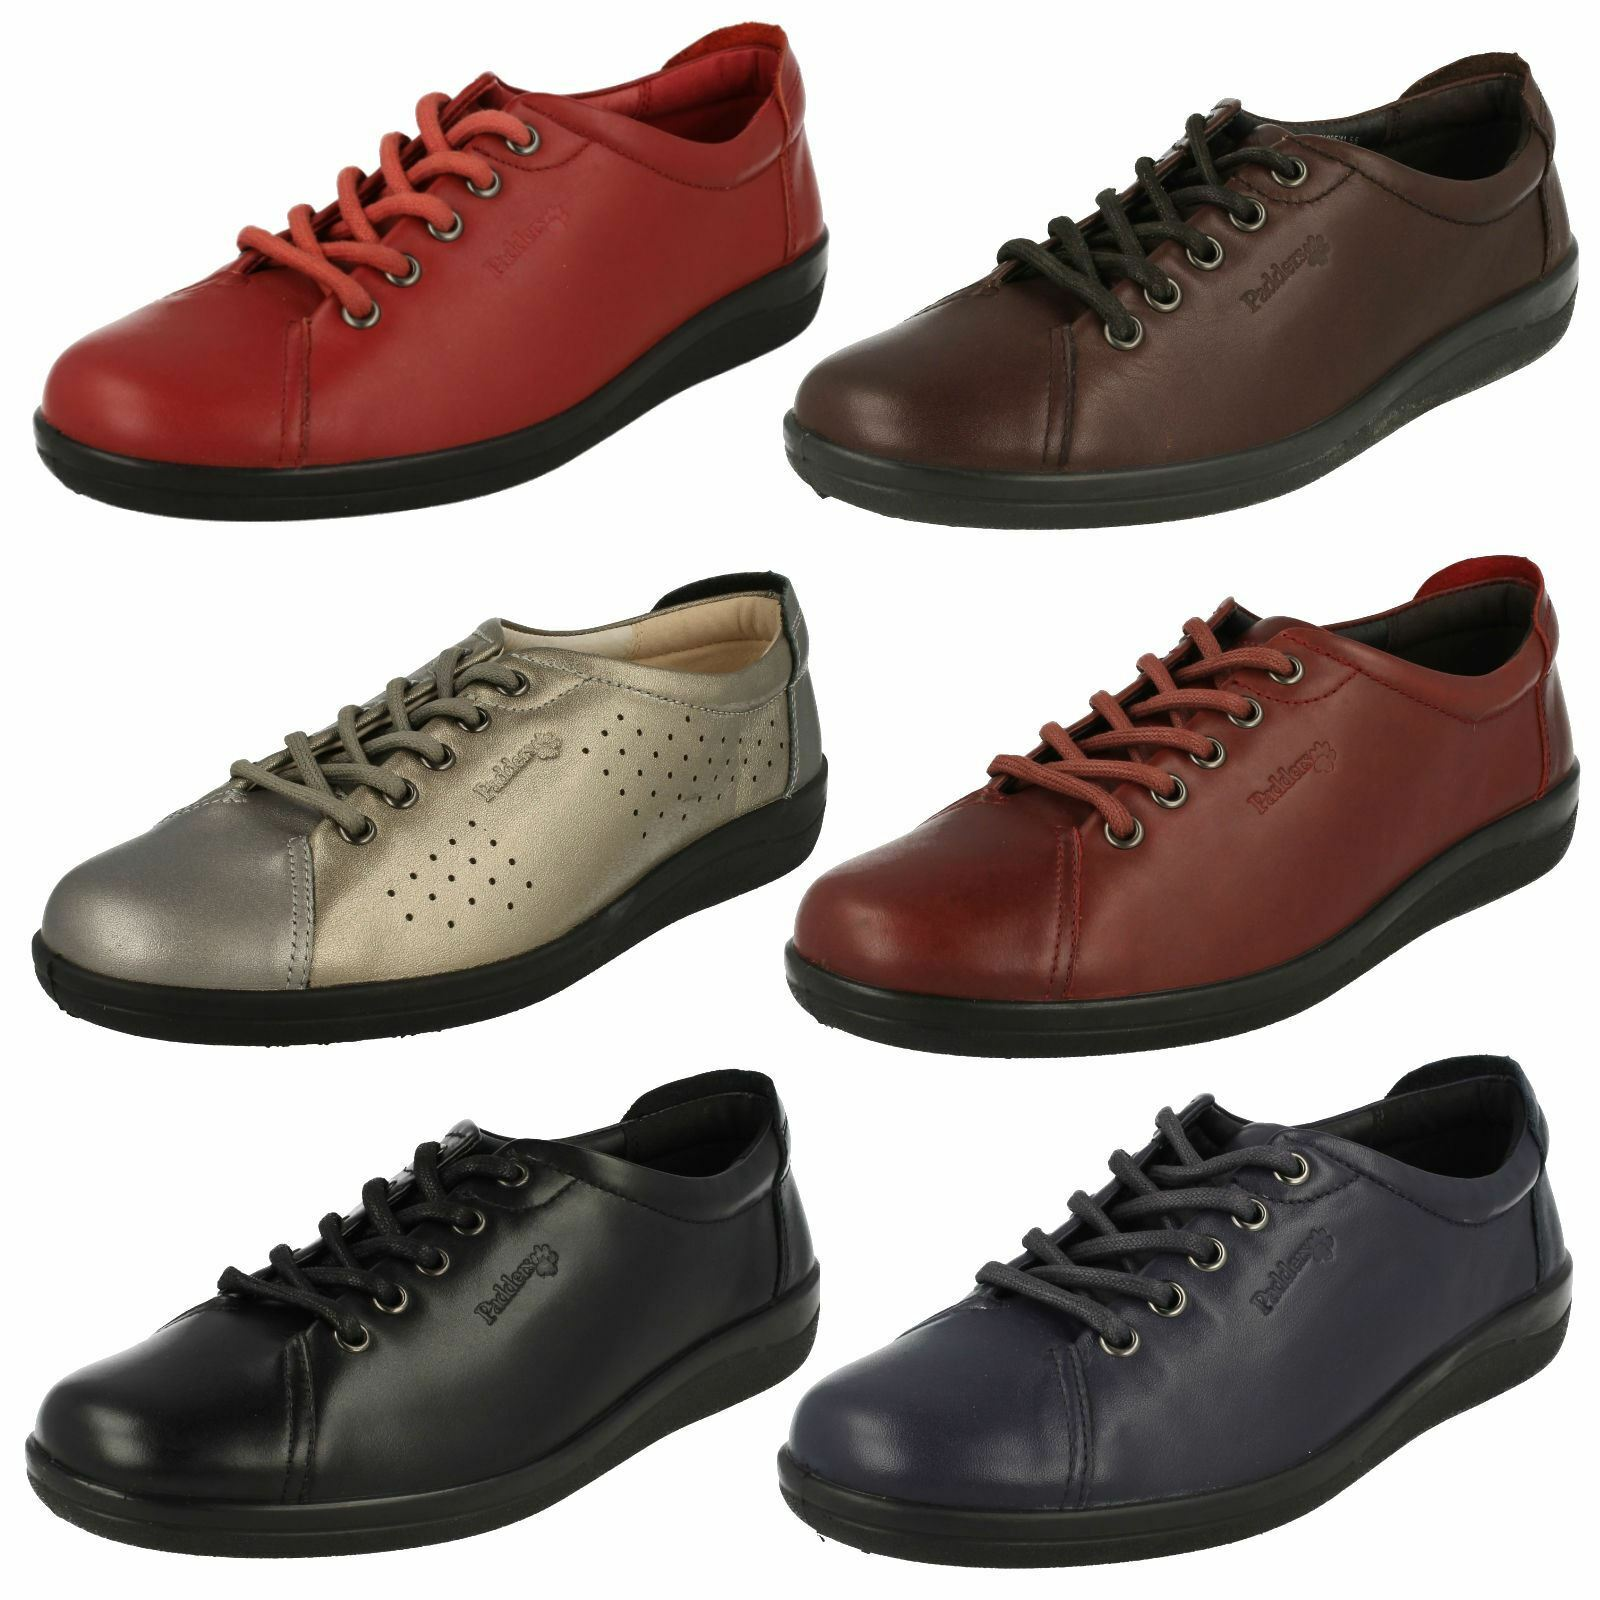 Zapatos promocionales para hombres y mujeres Ladies Padders Casual Lace Up Everyday Shoes Galaxy